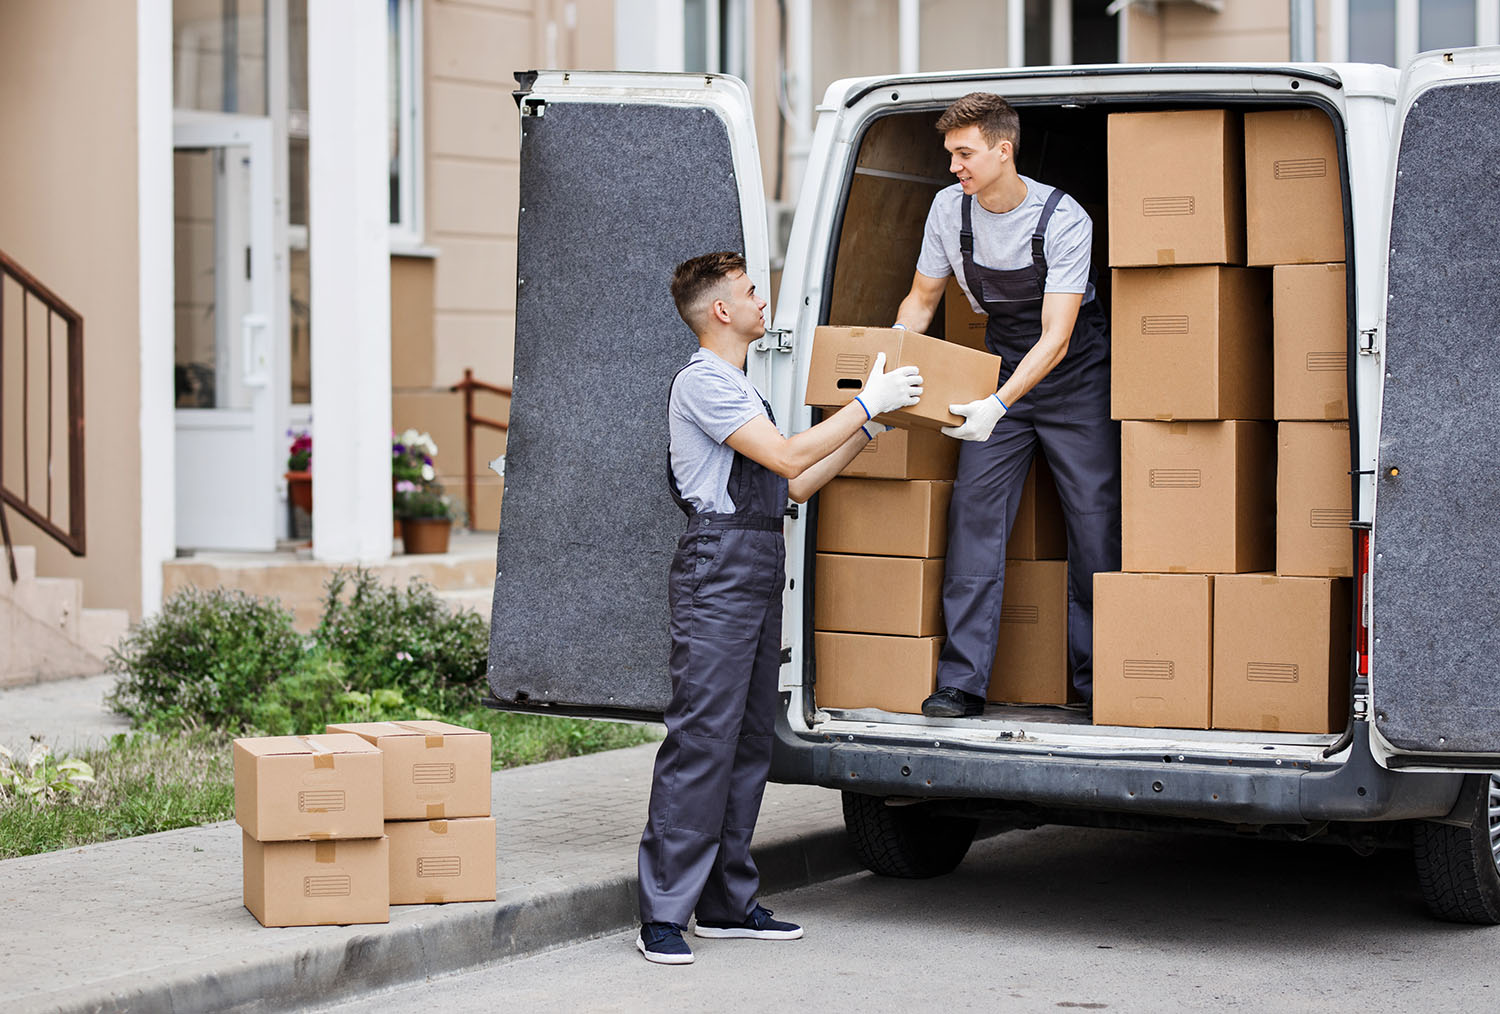 [:pl]Two young handsome movers wearing uniforms are unloading the van[:]